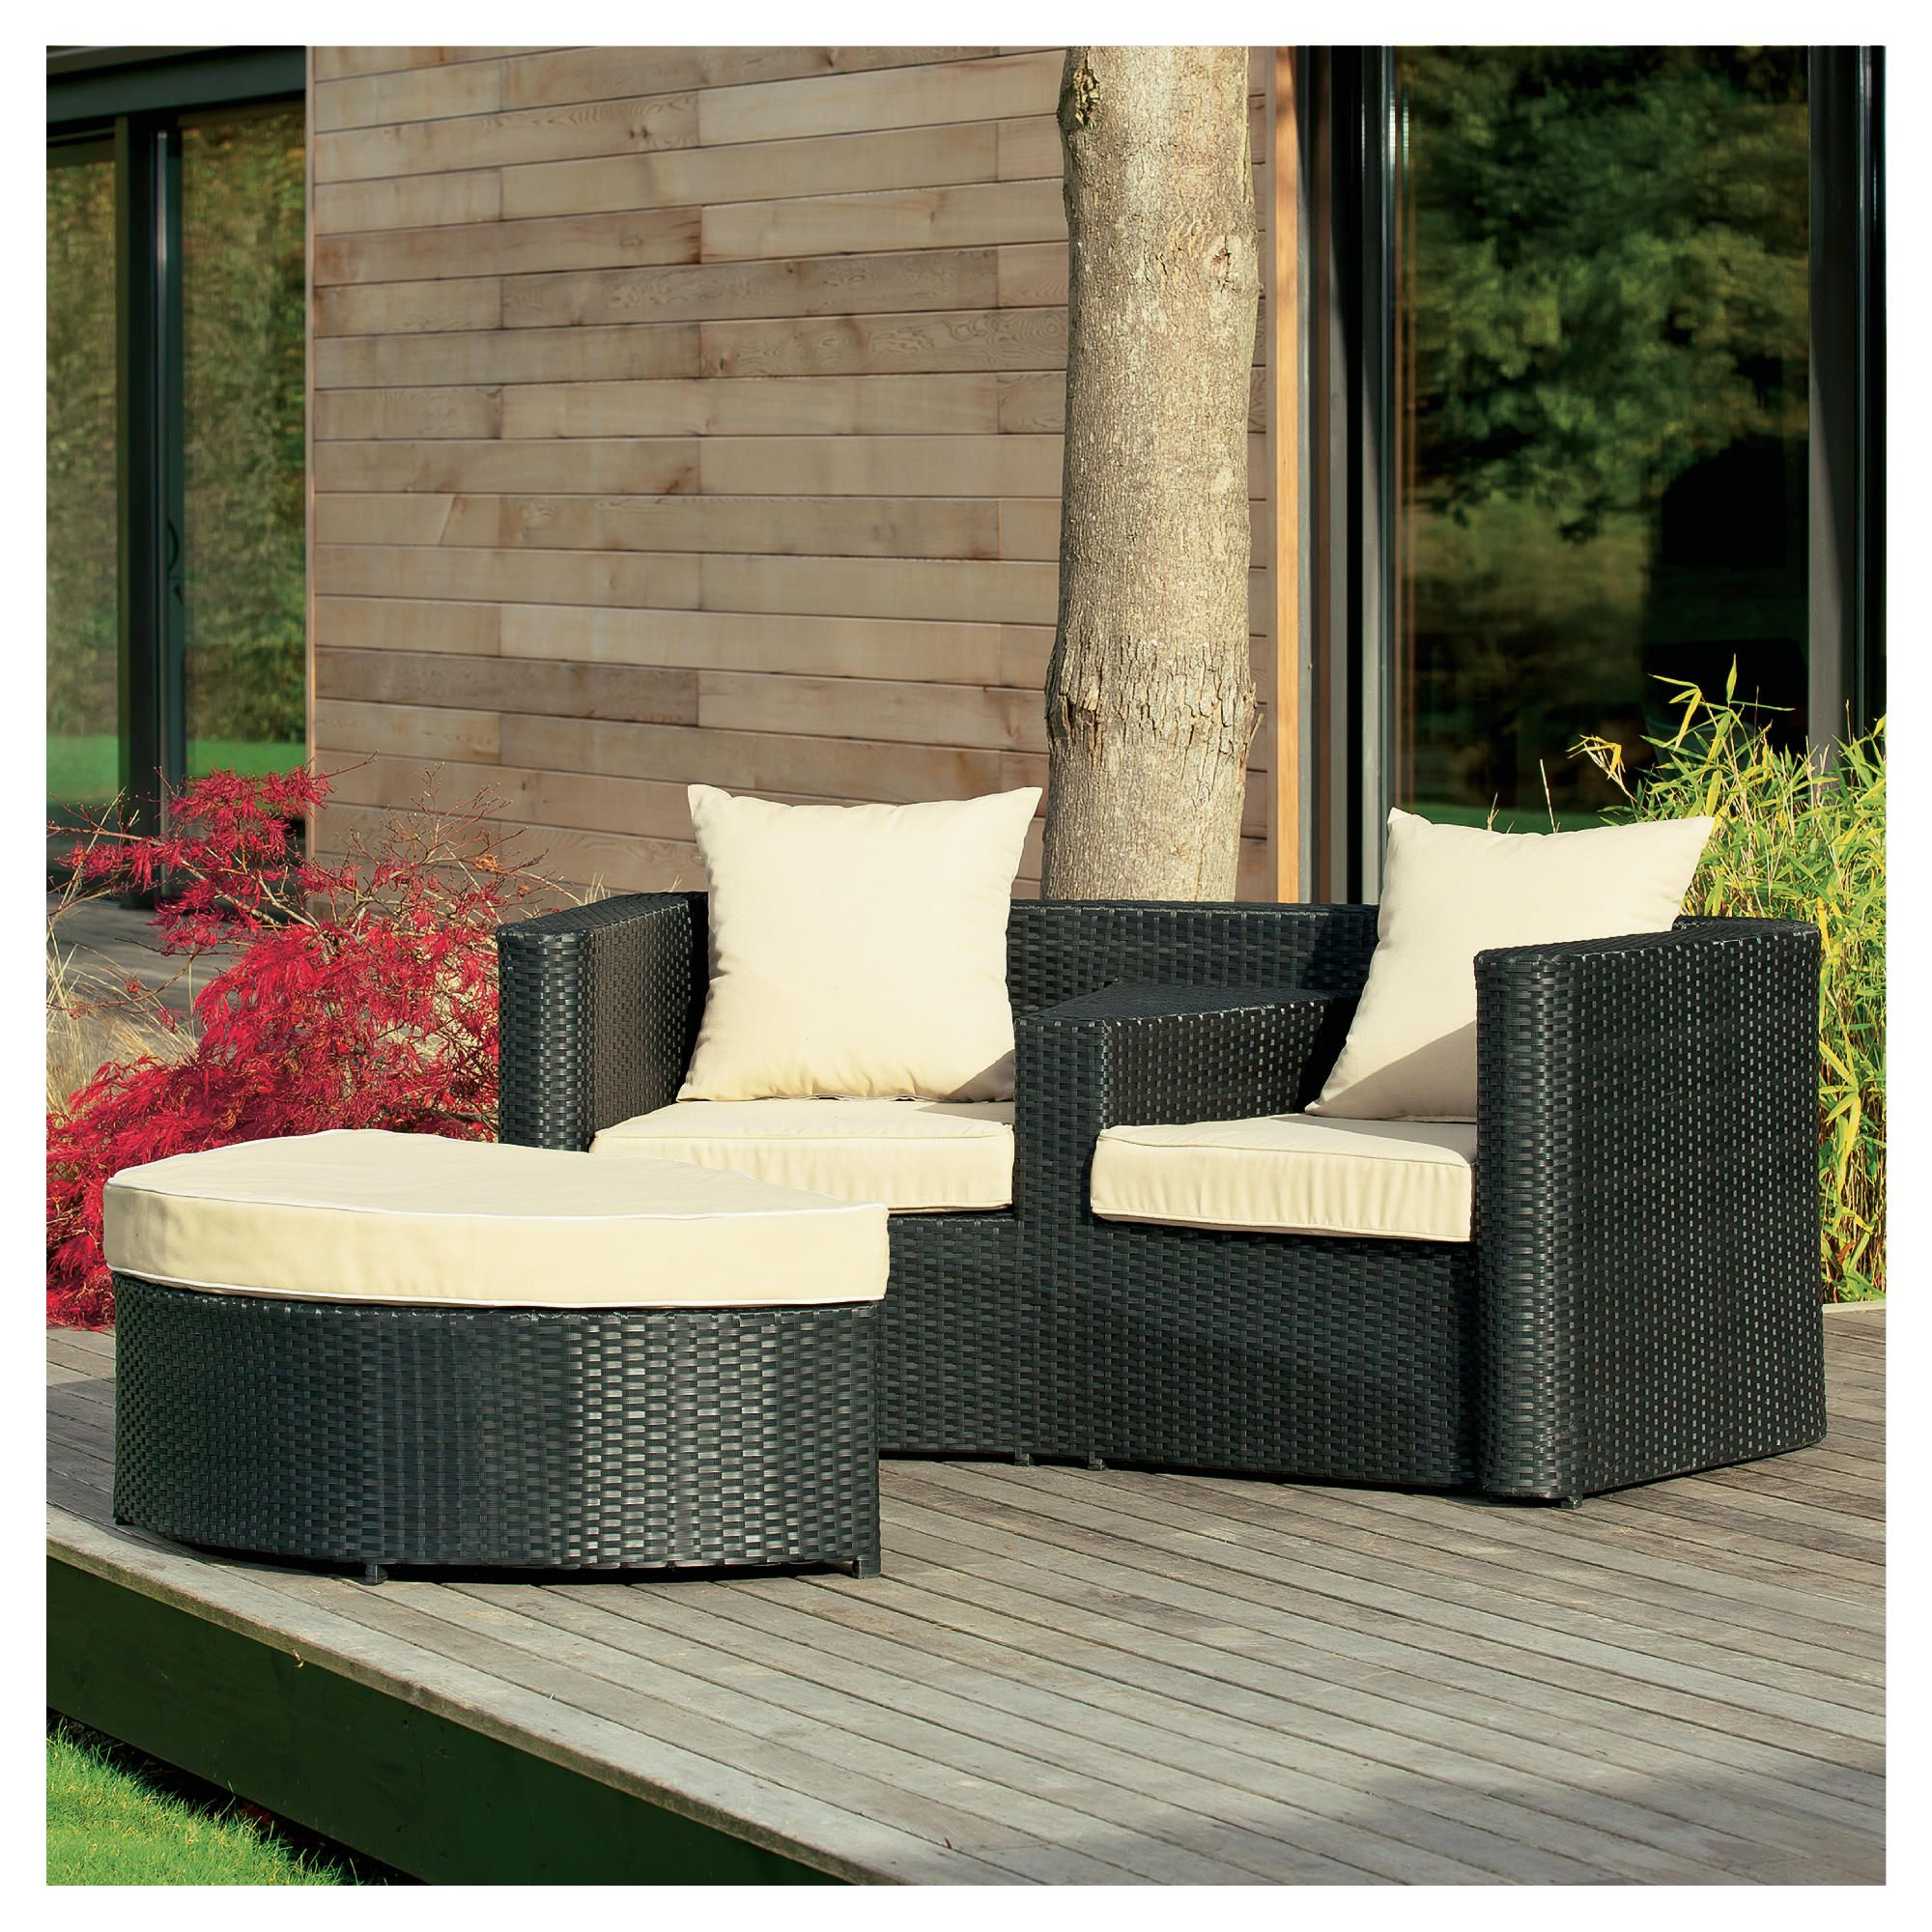 Figi Duo set with footstool, charcoal at Tesco Direct